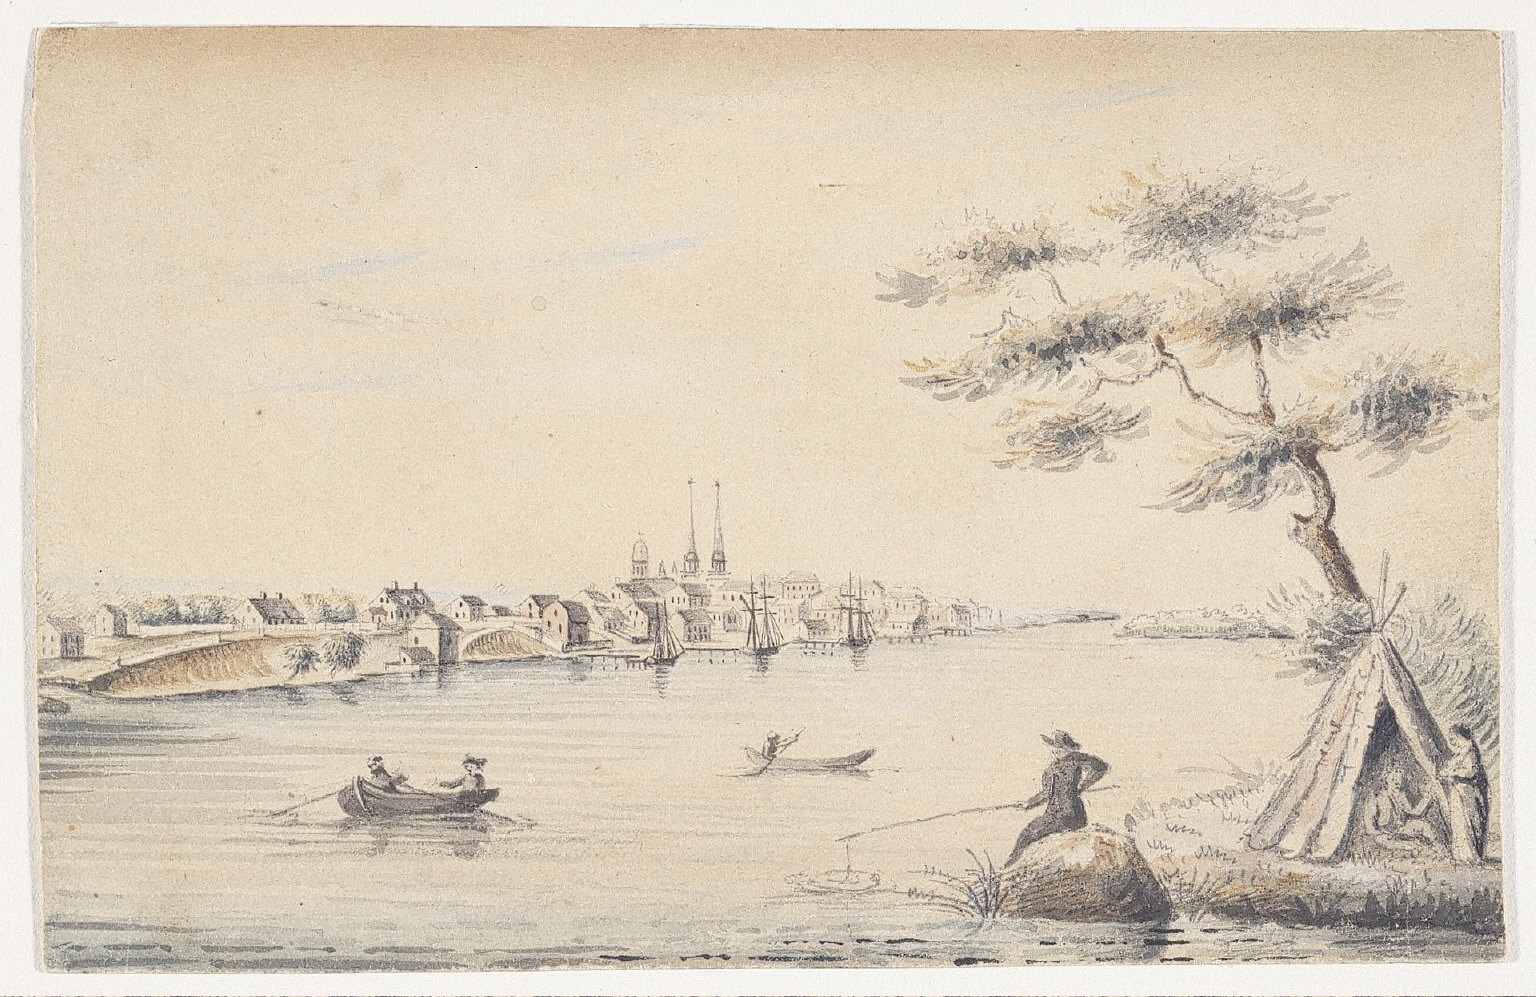 Detroit as Seen from the Canadian Shore in 1821